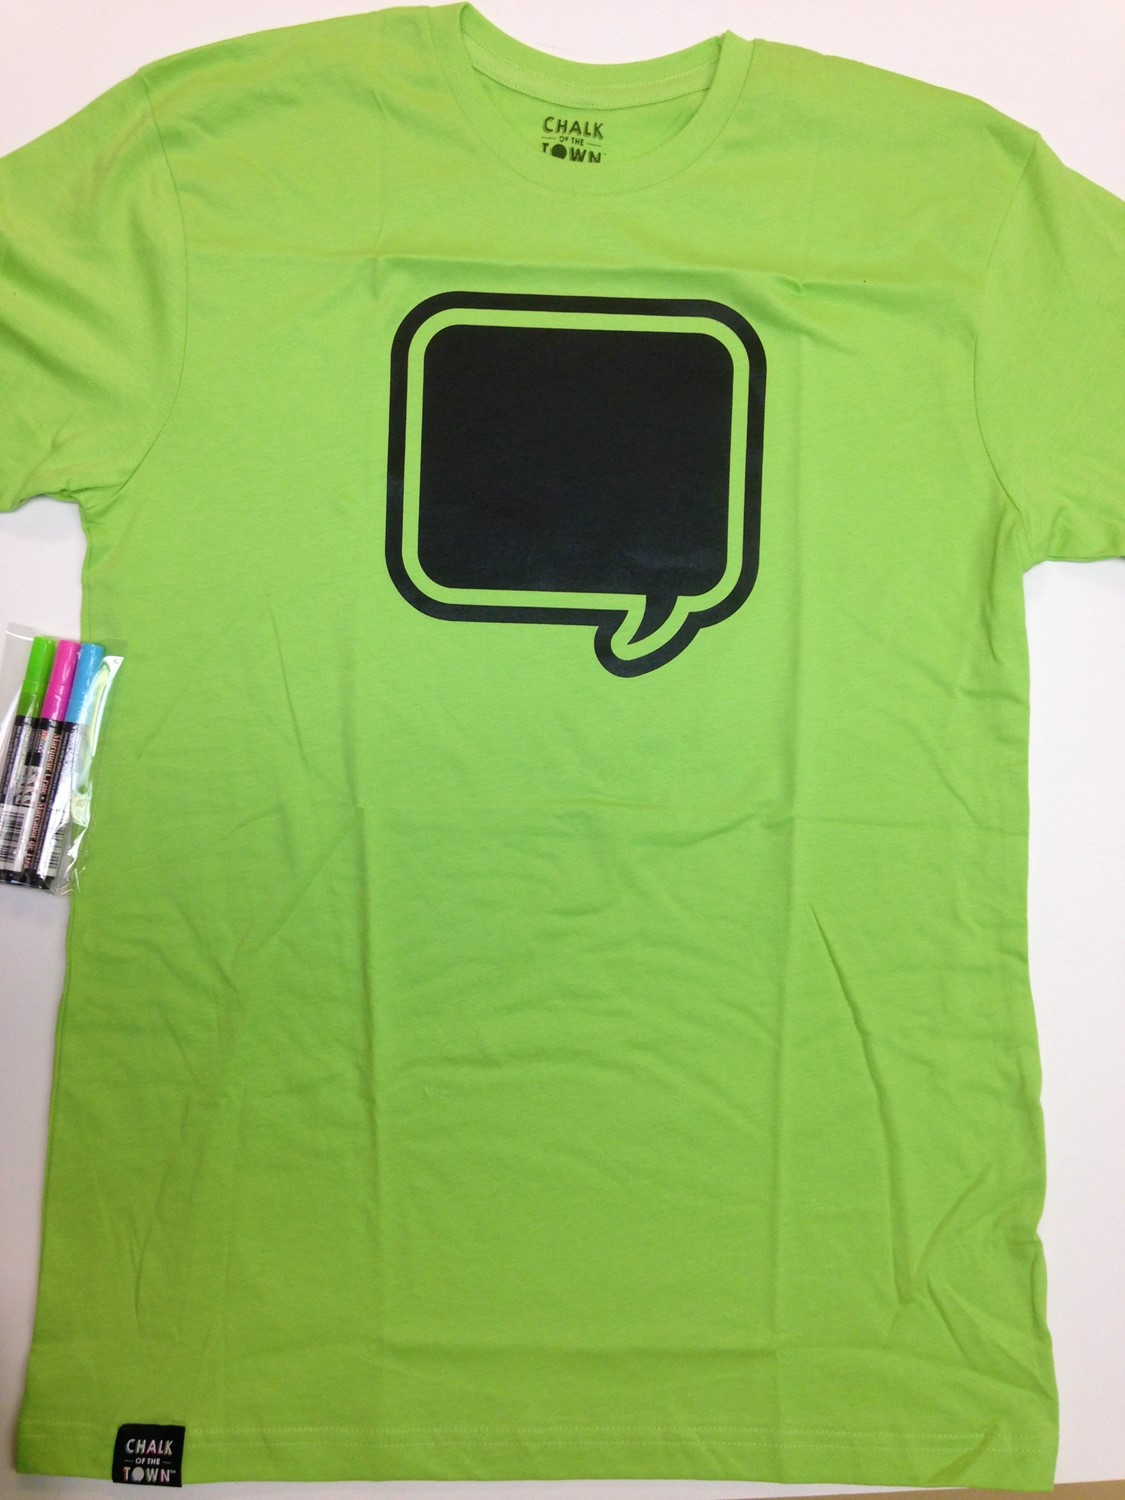 CHALK of the TOWN Chalkboard T-Shirt-Lime Green-XXLarge